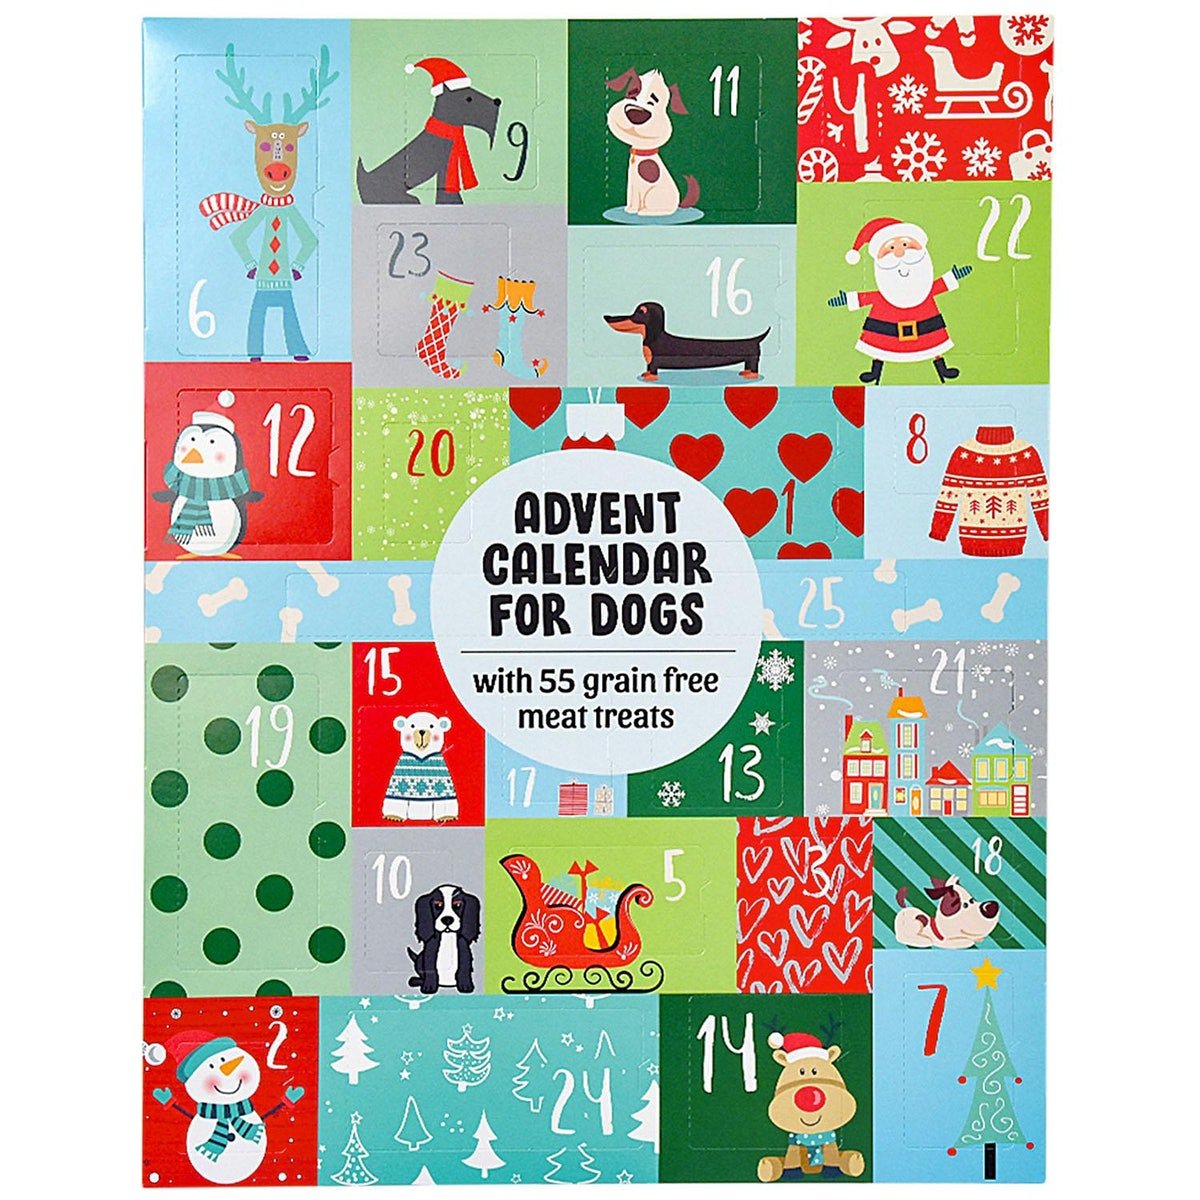 Advent Calendar for Dogs with 55 Grain-Free Meat Treats